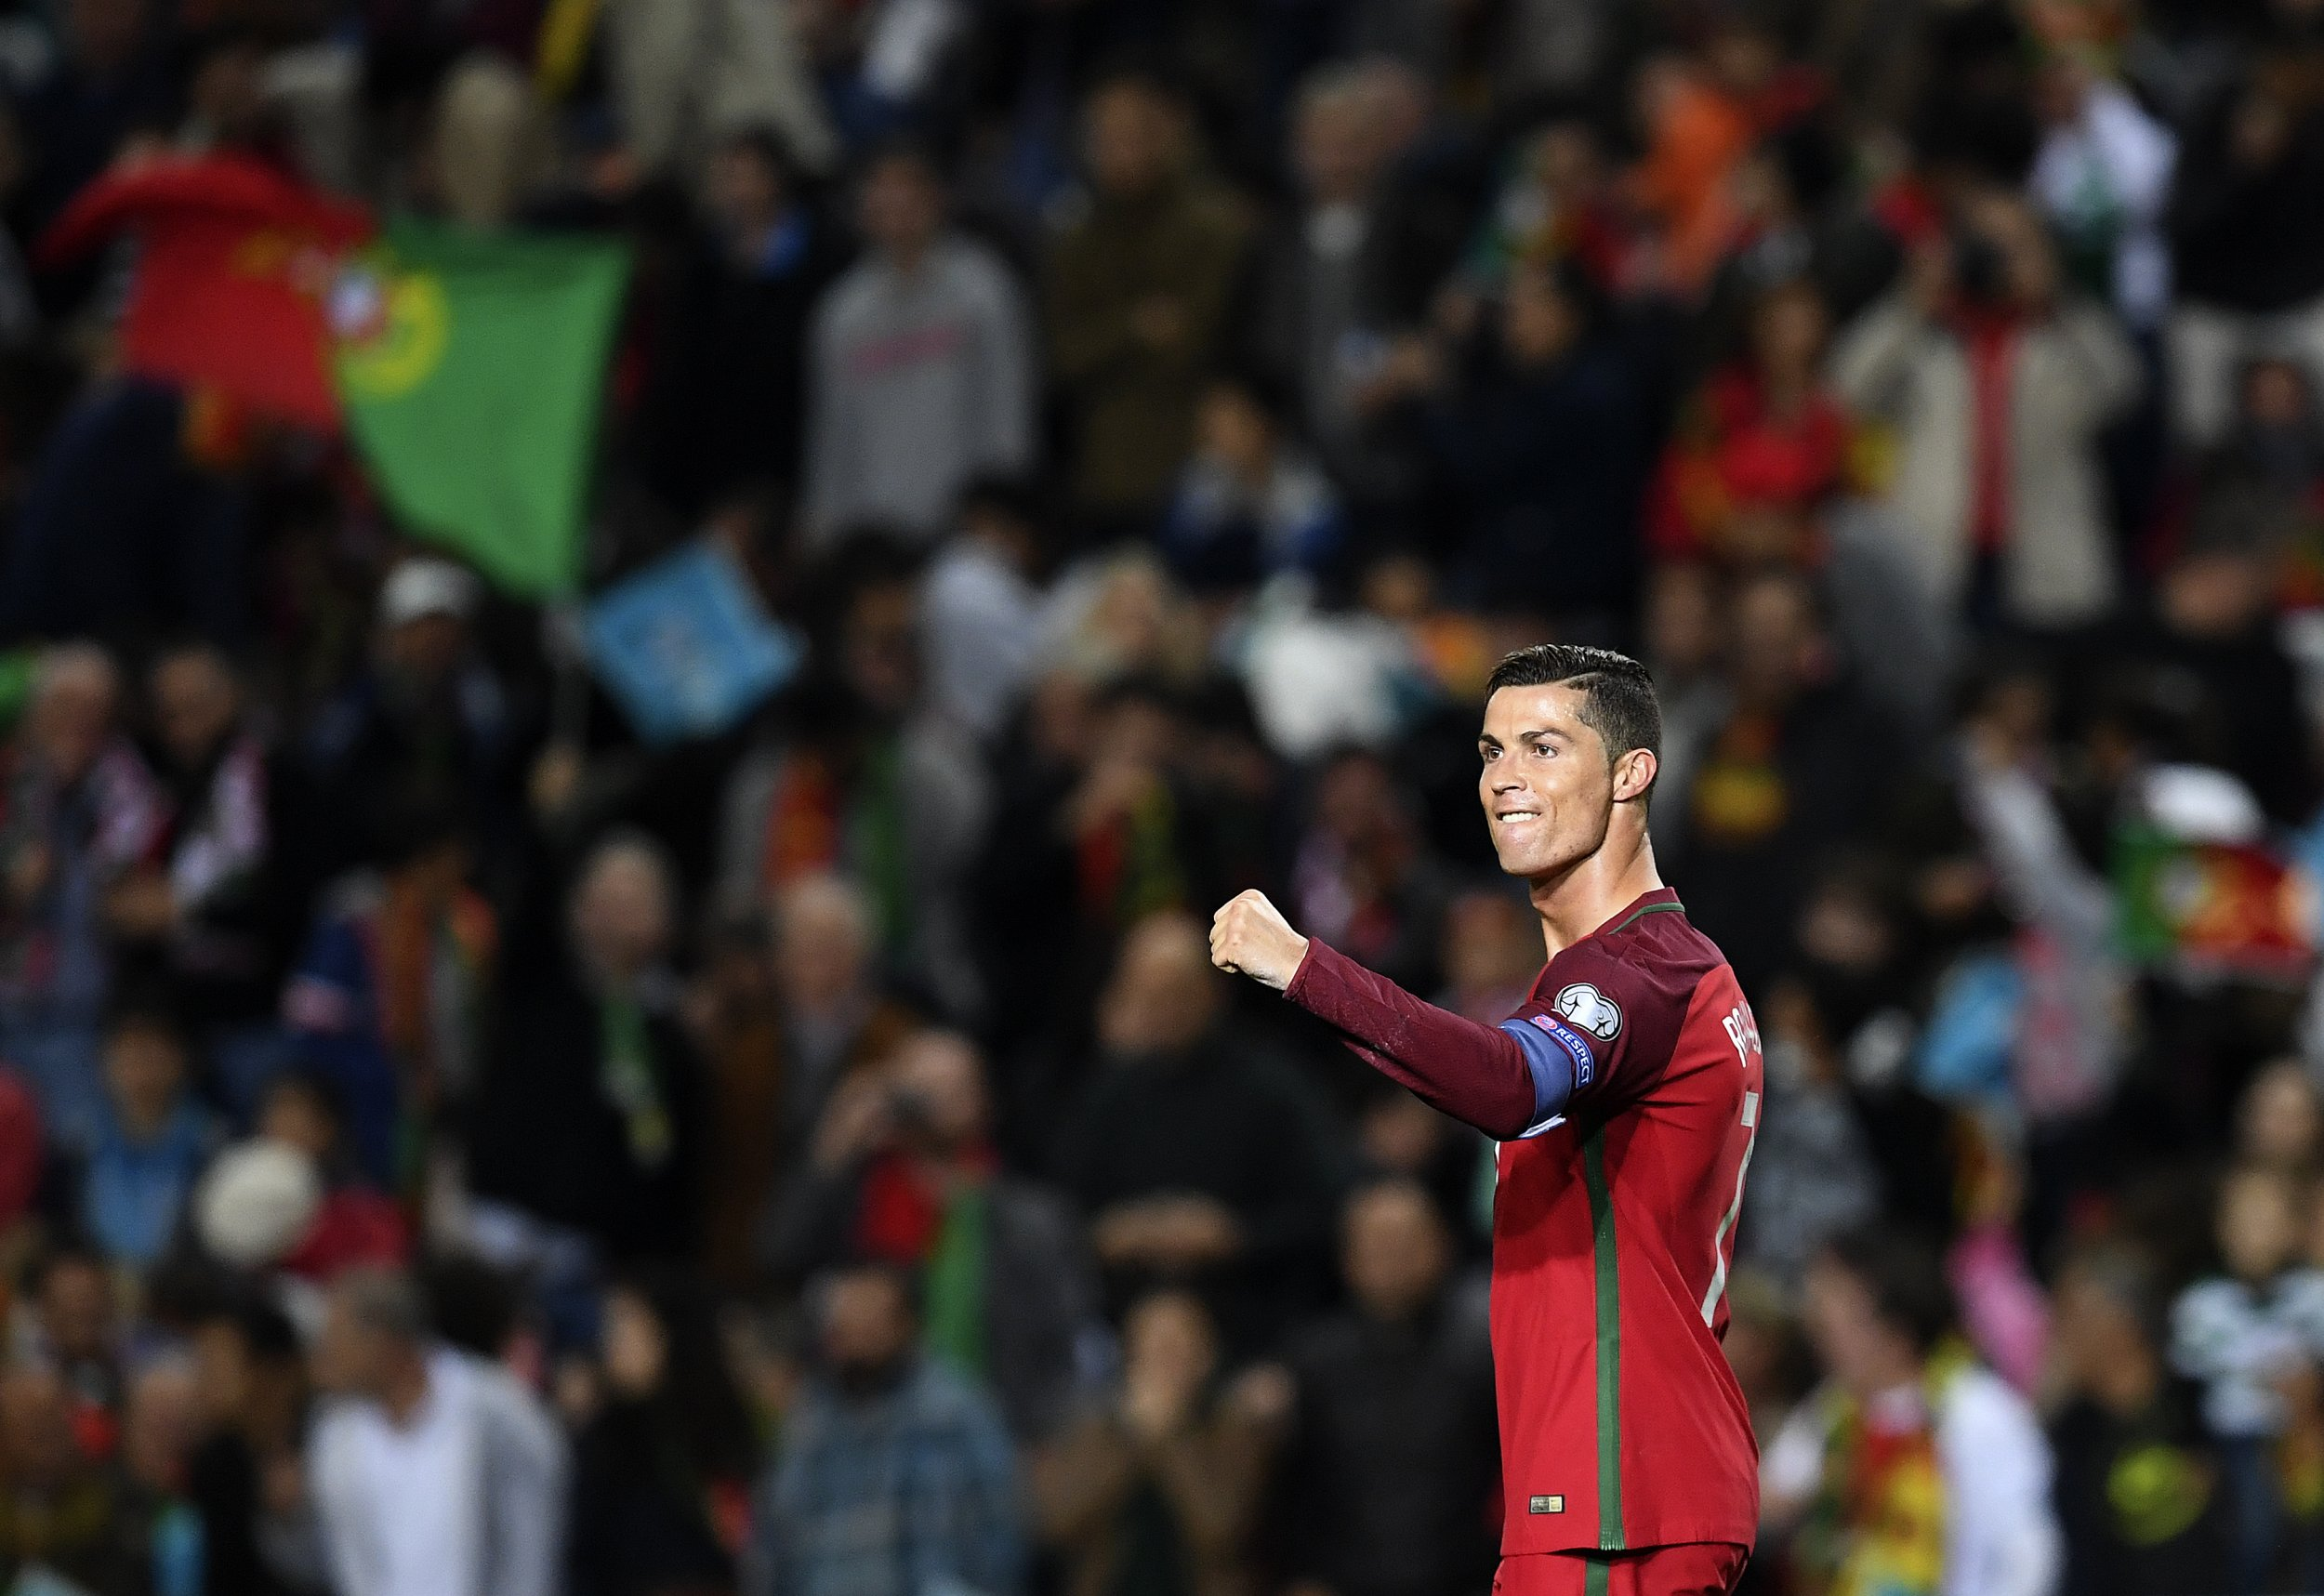 Real Madrid and Portugal star Cristiano Ronaldo